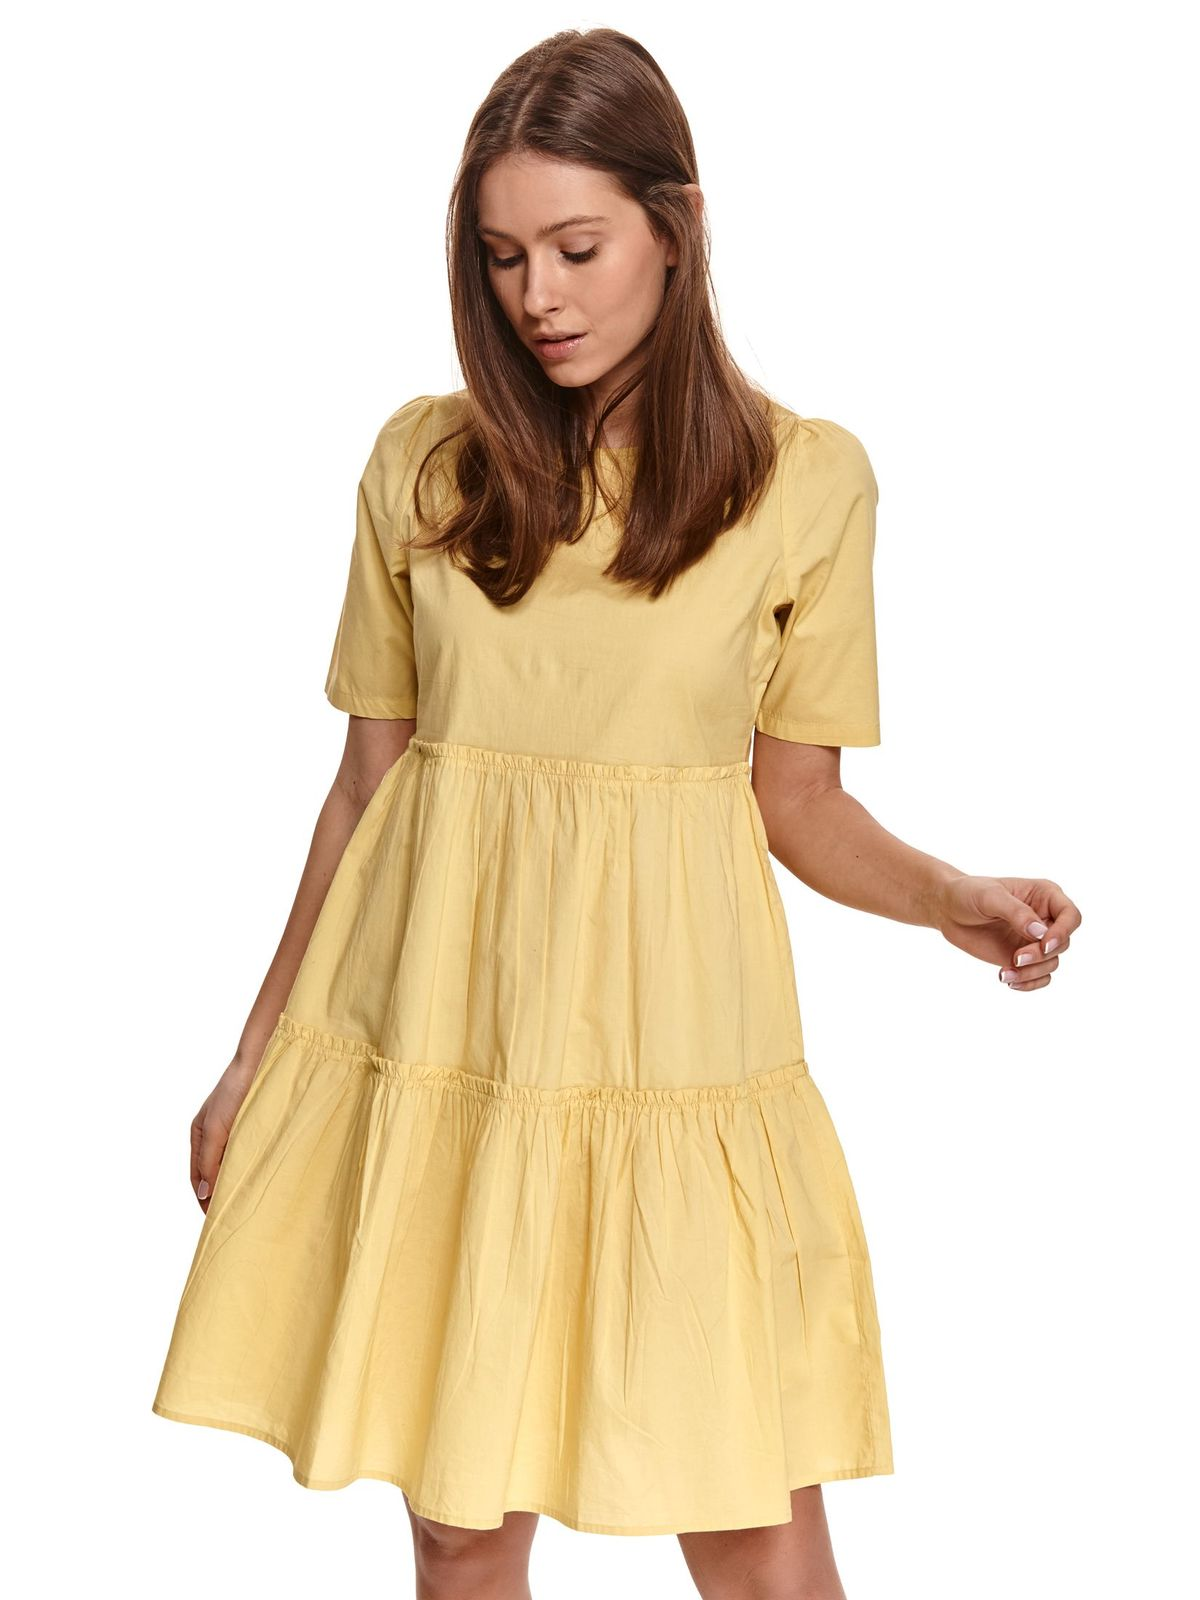 Yellow dress poplin, thin cotton loose fit with ruffle details